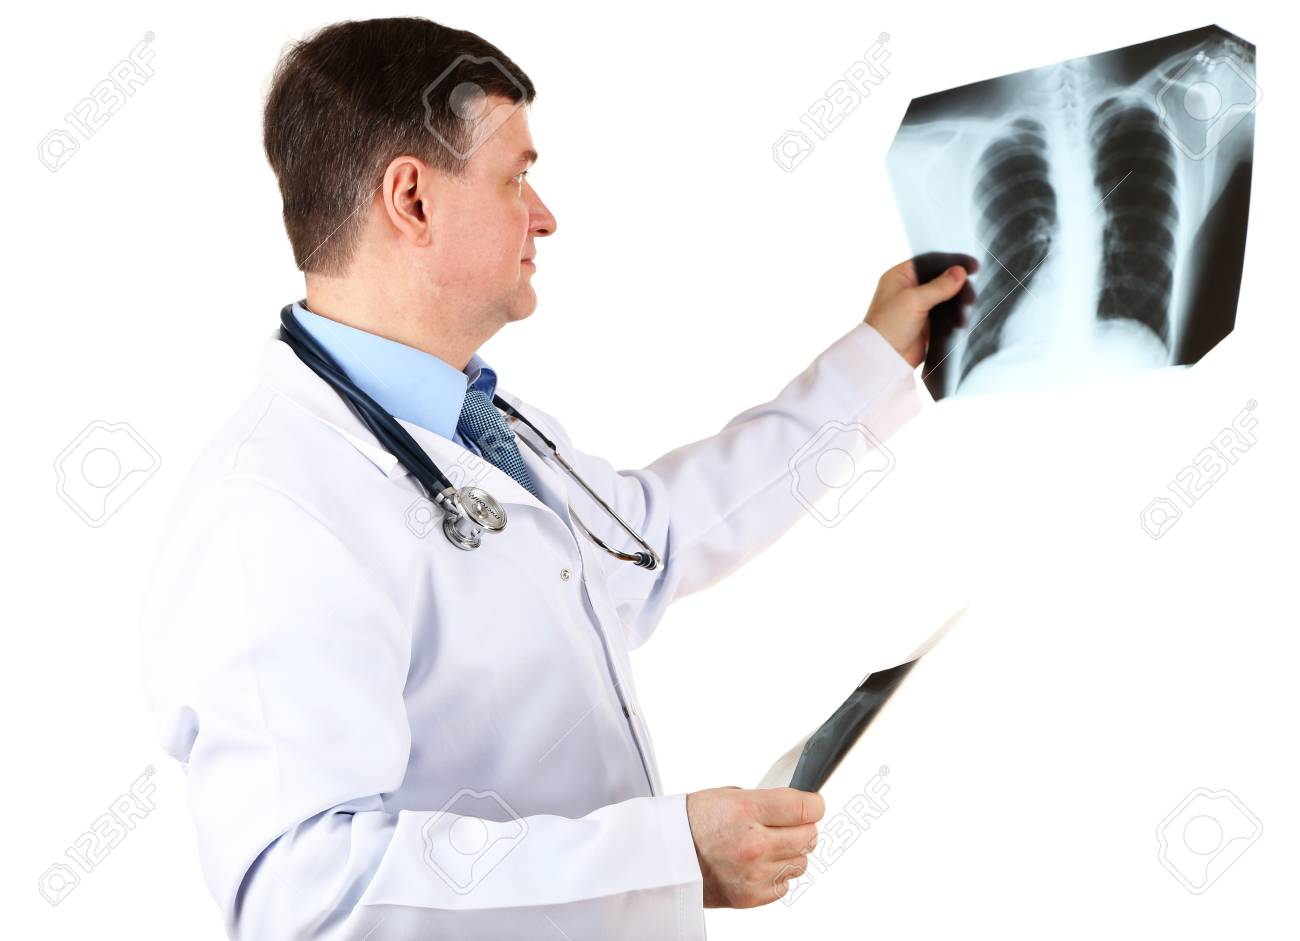 Medical doctor analysing x-ray image  isolated on white Stock Photo - 21541859